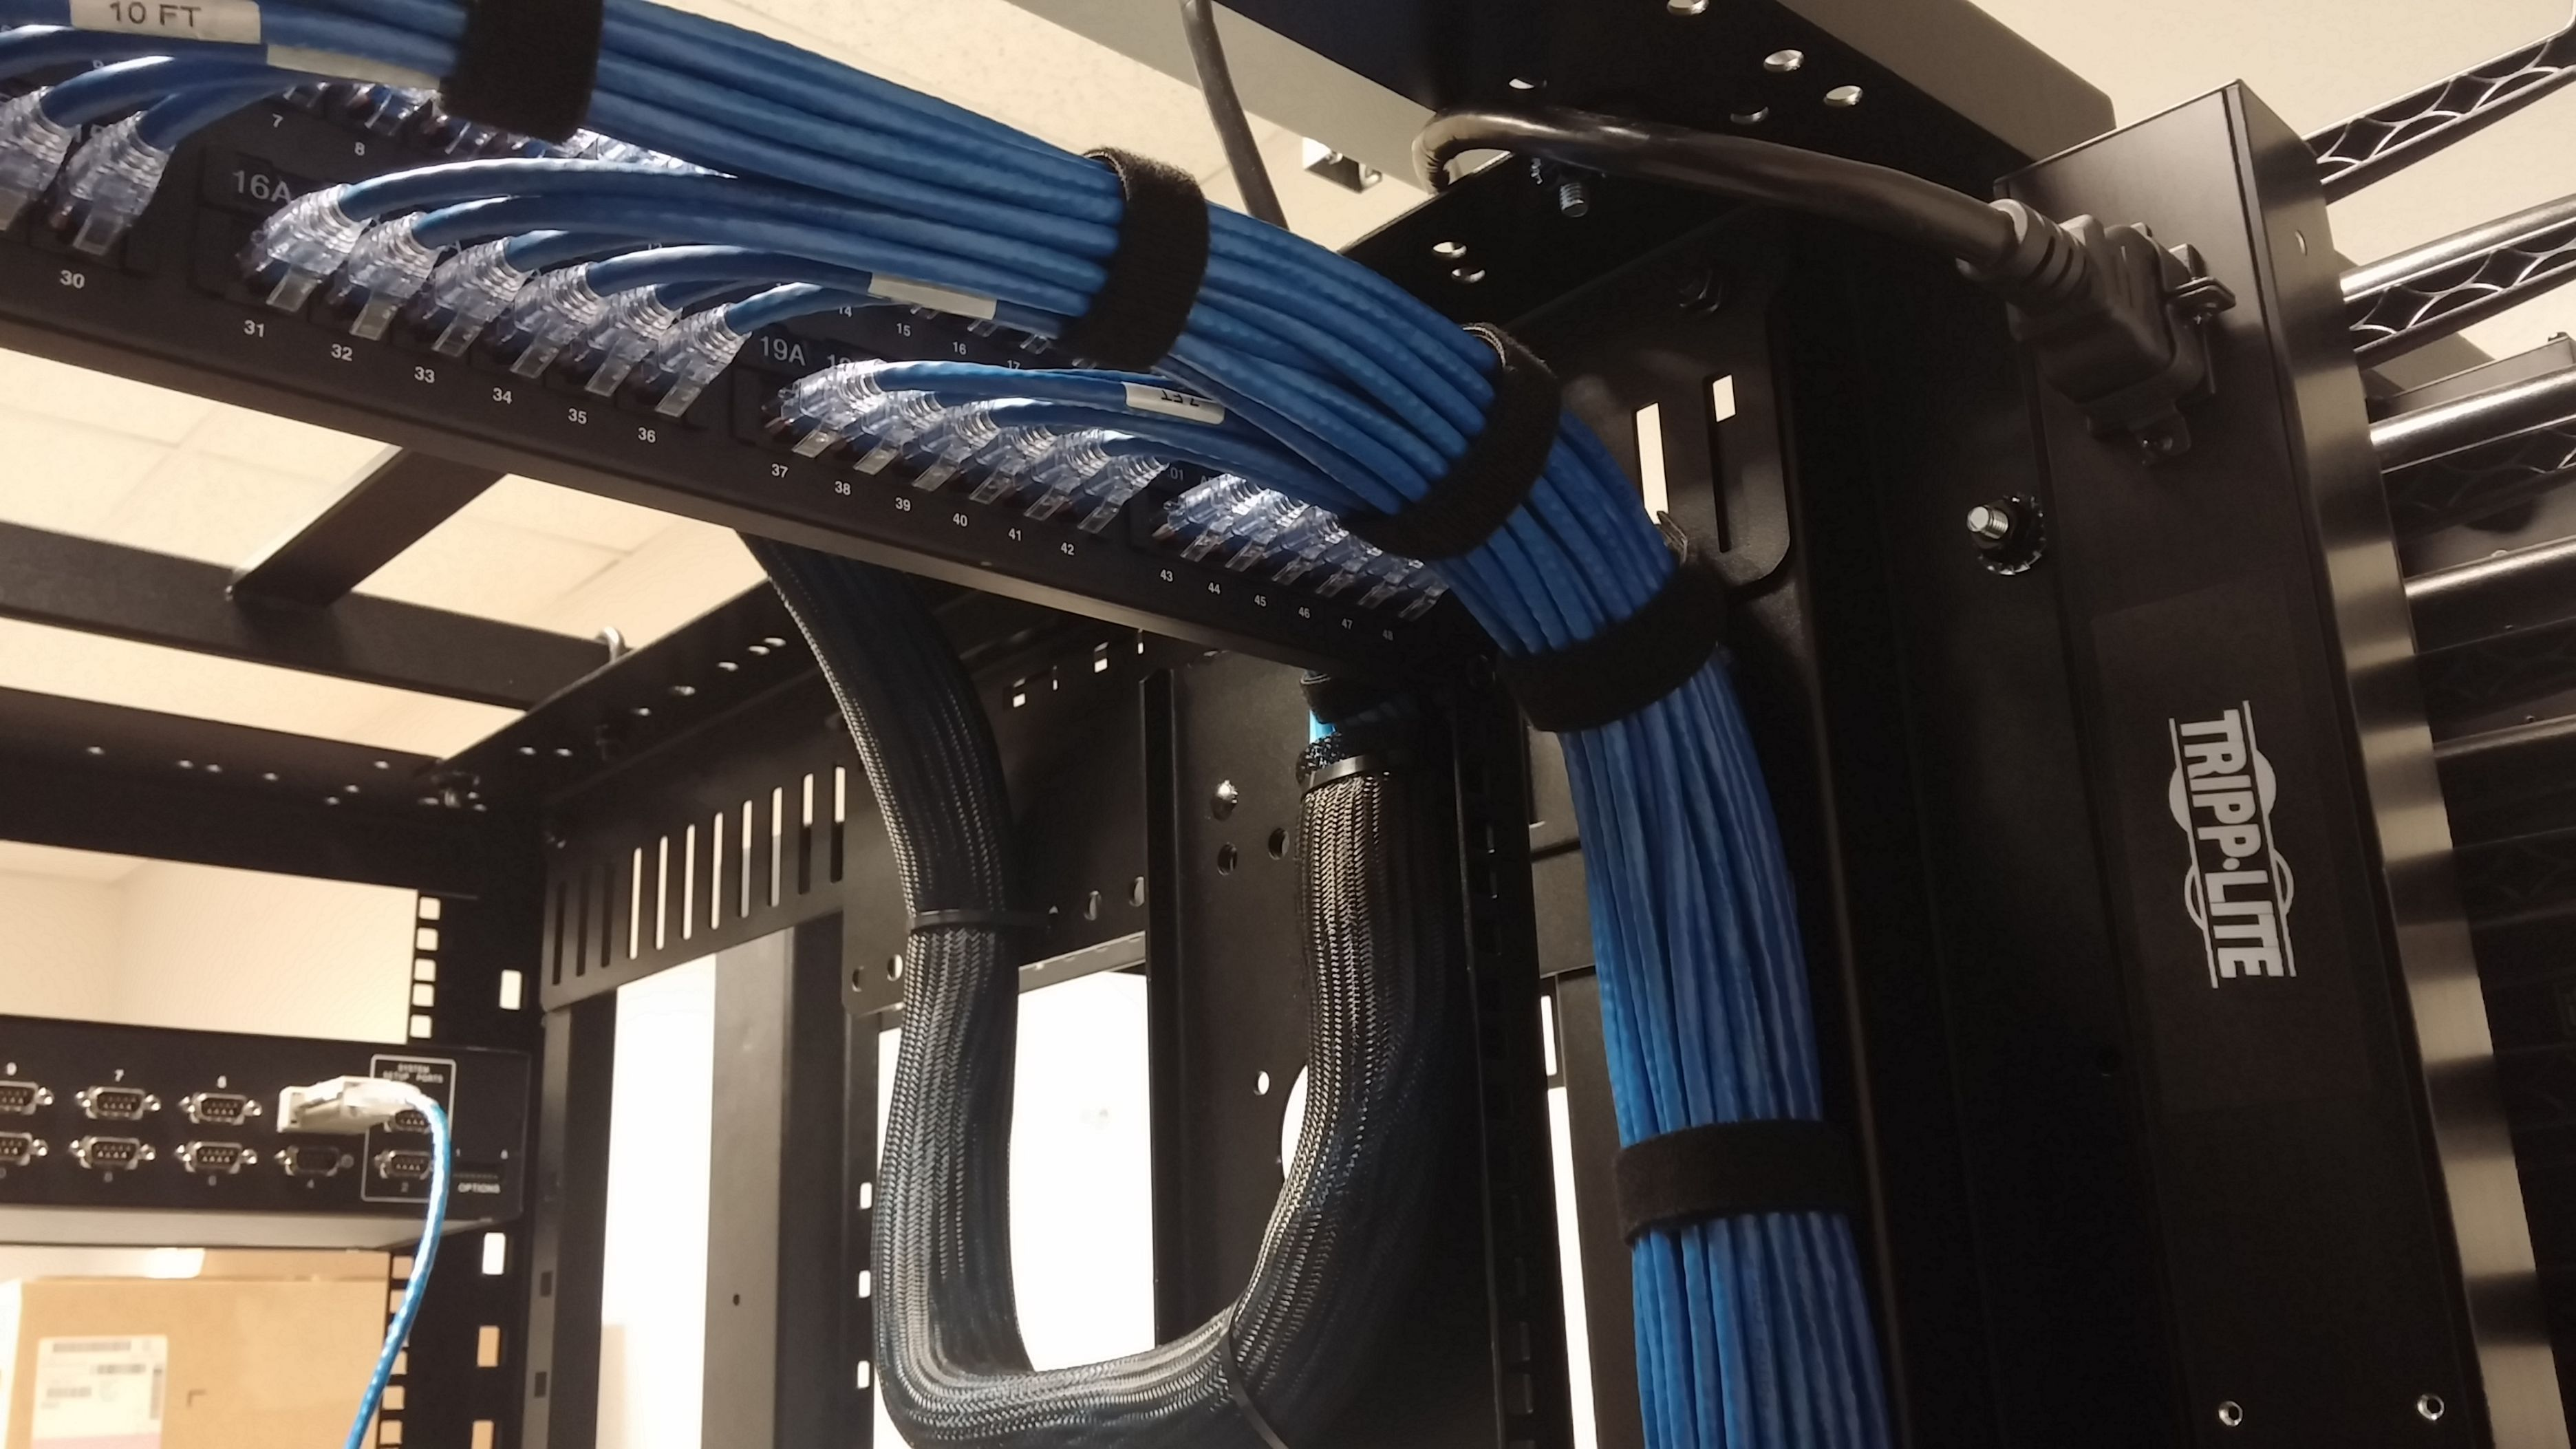 wiring management into patch panels nice use of velcro instead of rh pinterest com